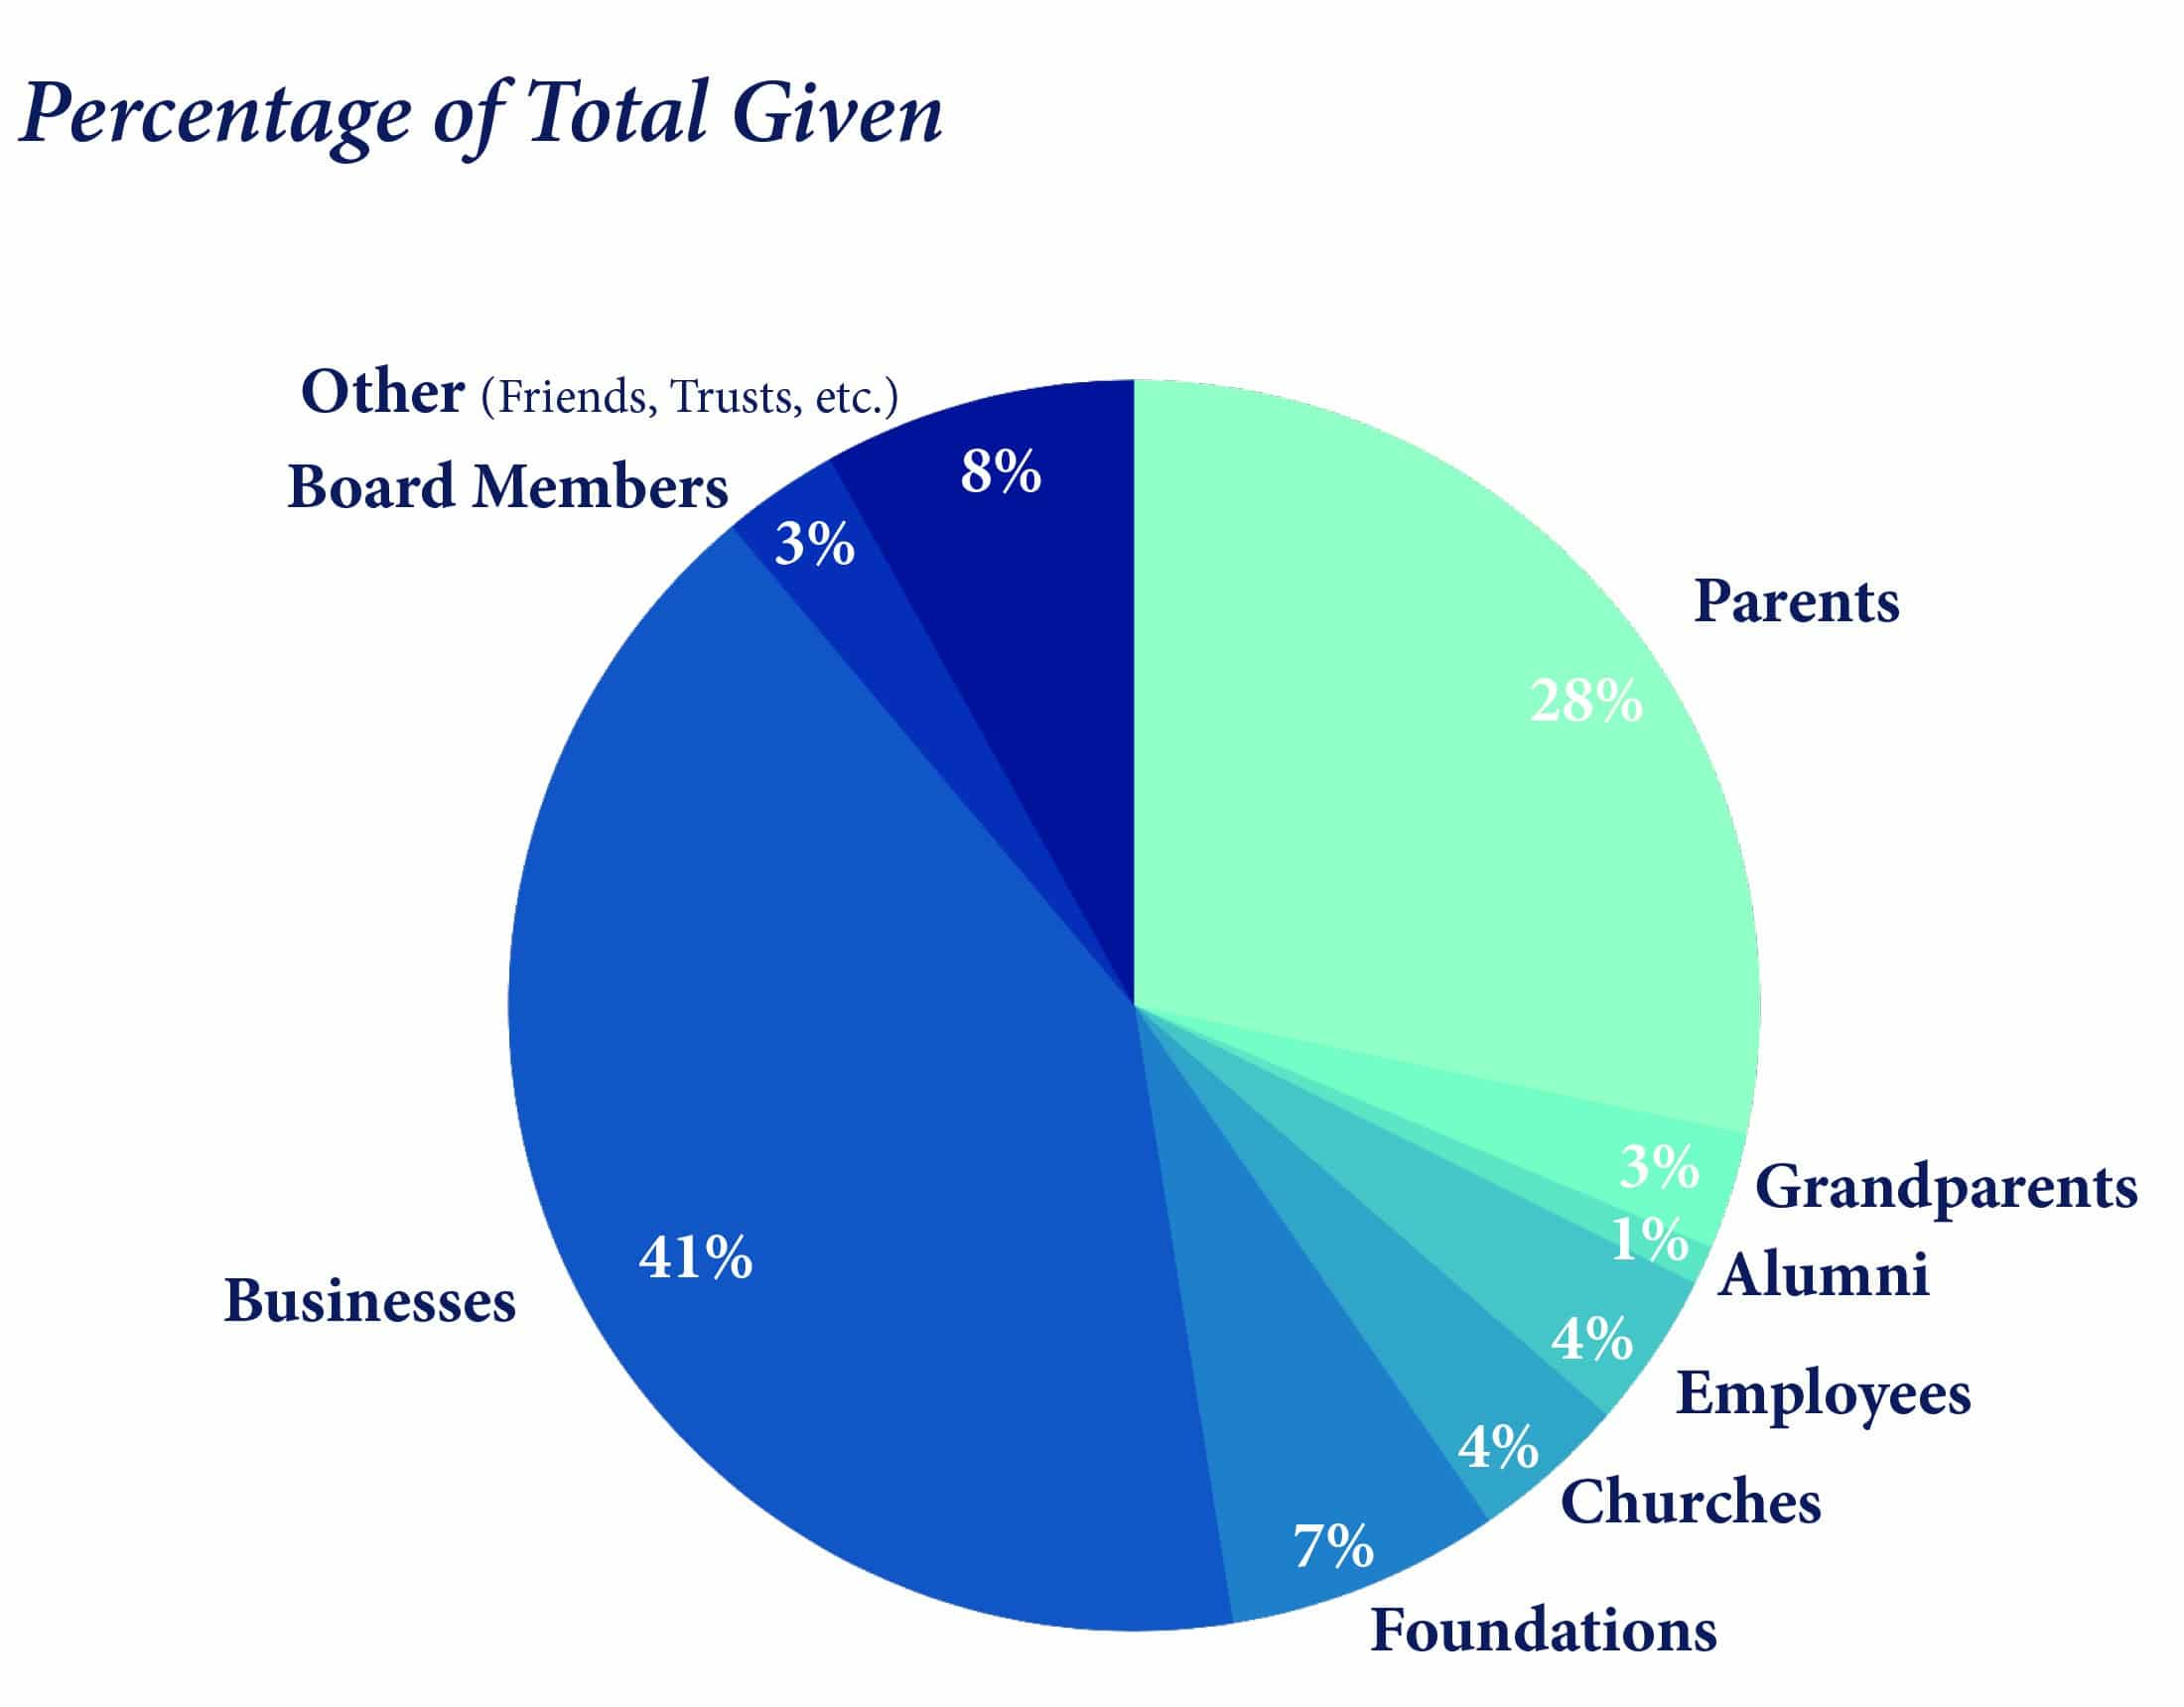 Christian Academy School System | 2020-2021 Annual Review | Percent of Total Given